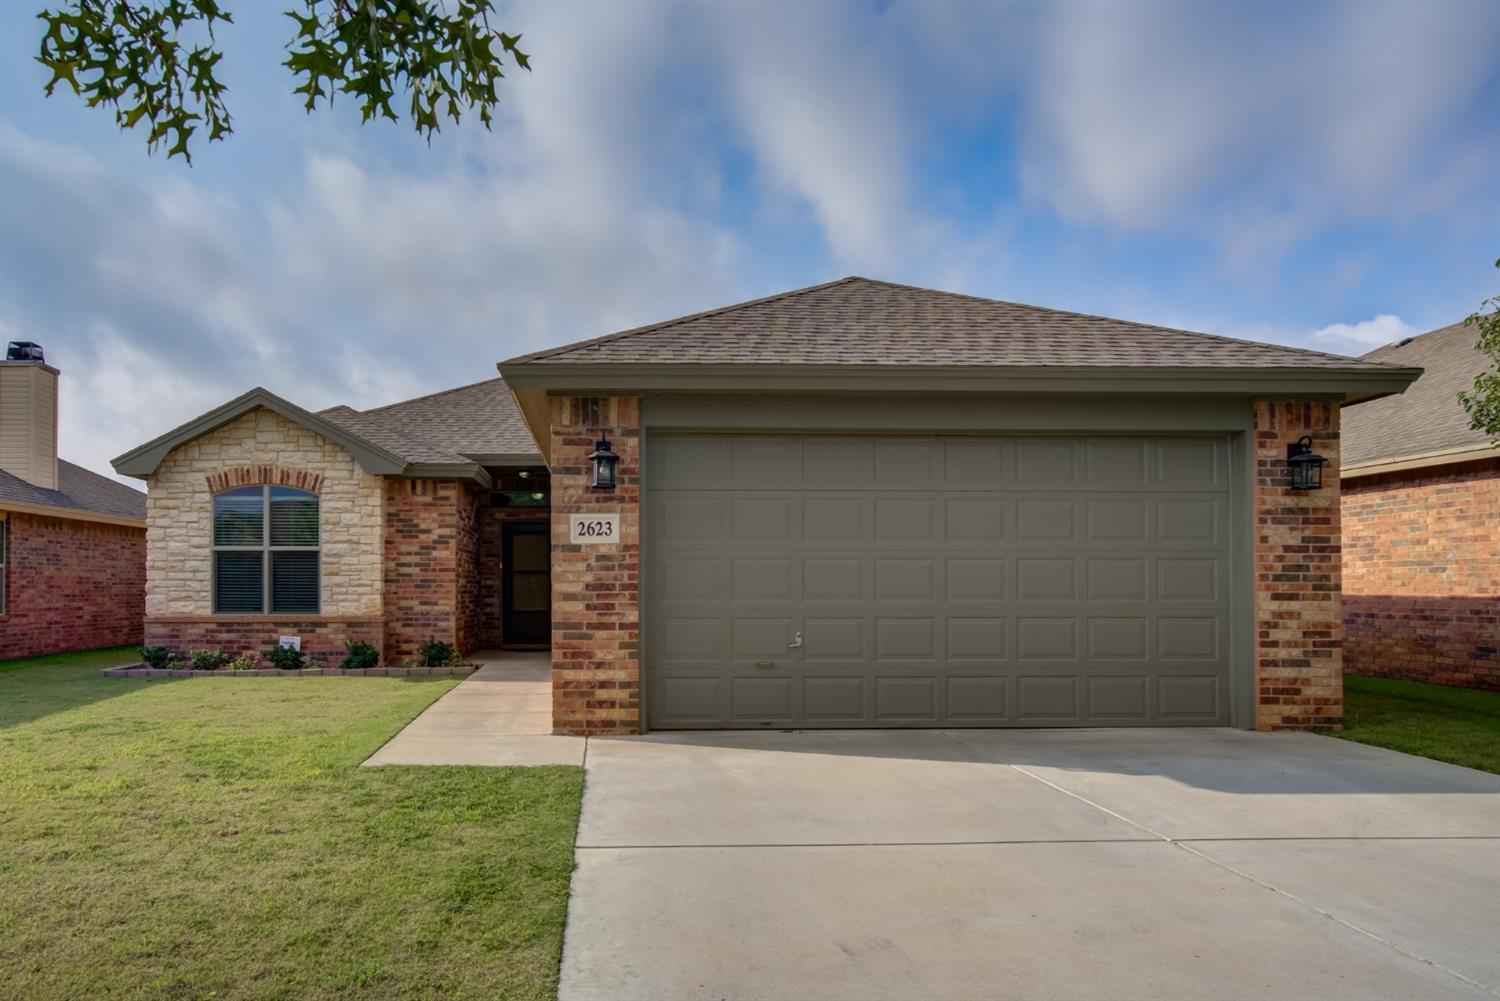 2623 112th Street, Lubbock in Lubbock County, TX 79423 Home for Sale